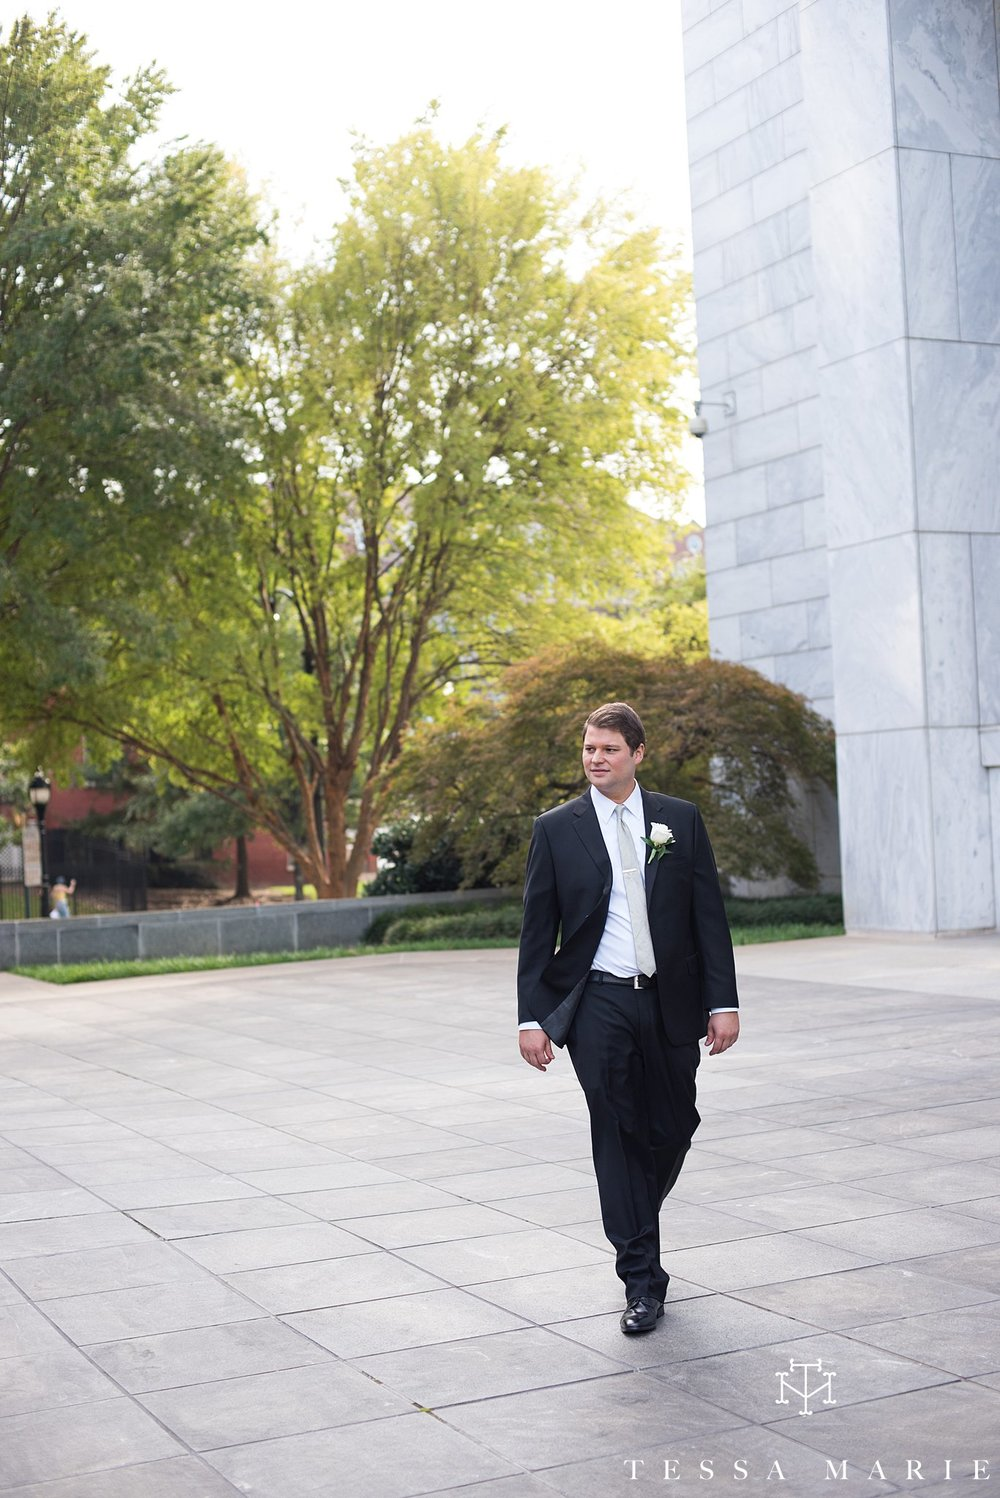 atlanta_wedding_photographer_tessa_marie_weddings_lowes_hotel_peachtree_midtown_fall_wedding_0425.jpg